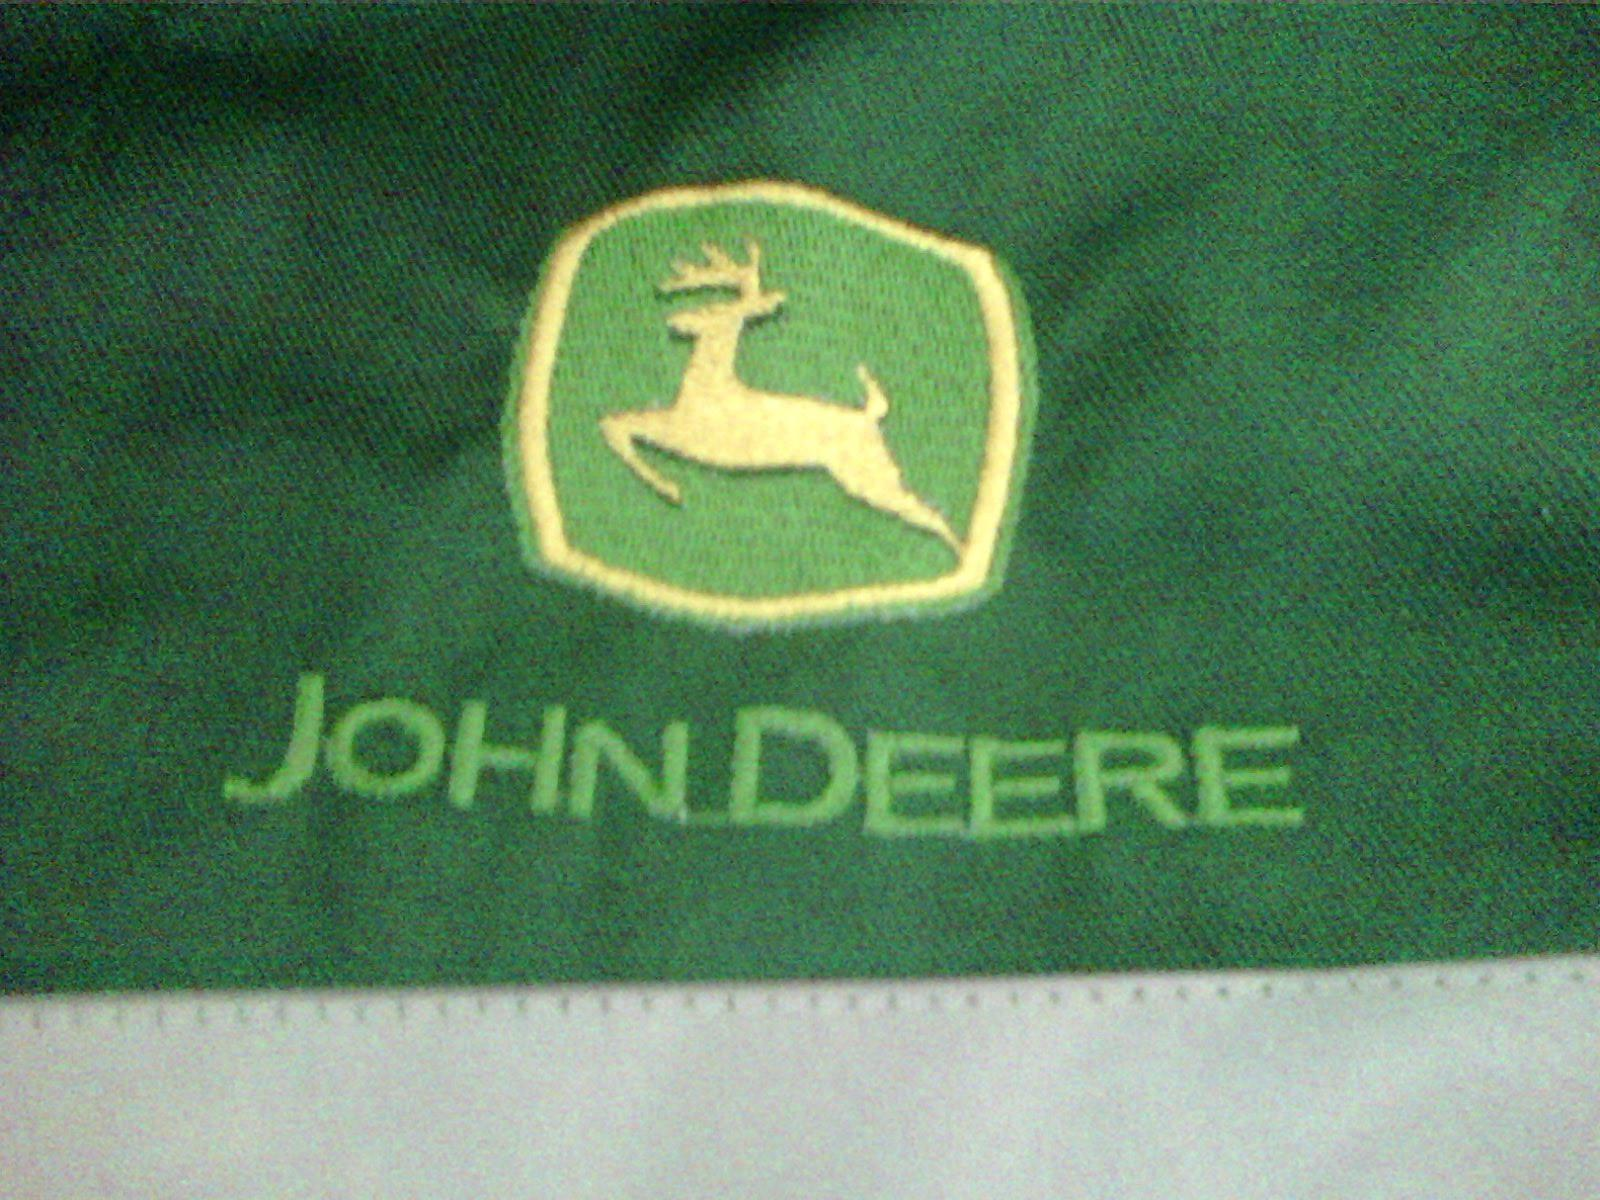 John Deere Emblem Embroidery Designs : John deere logo machine embroidery design embroidered